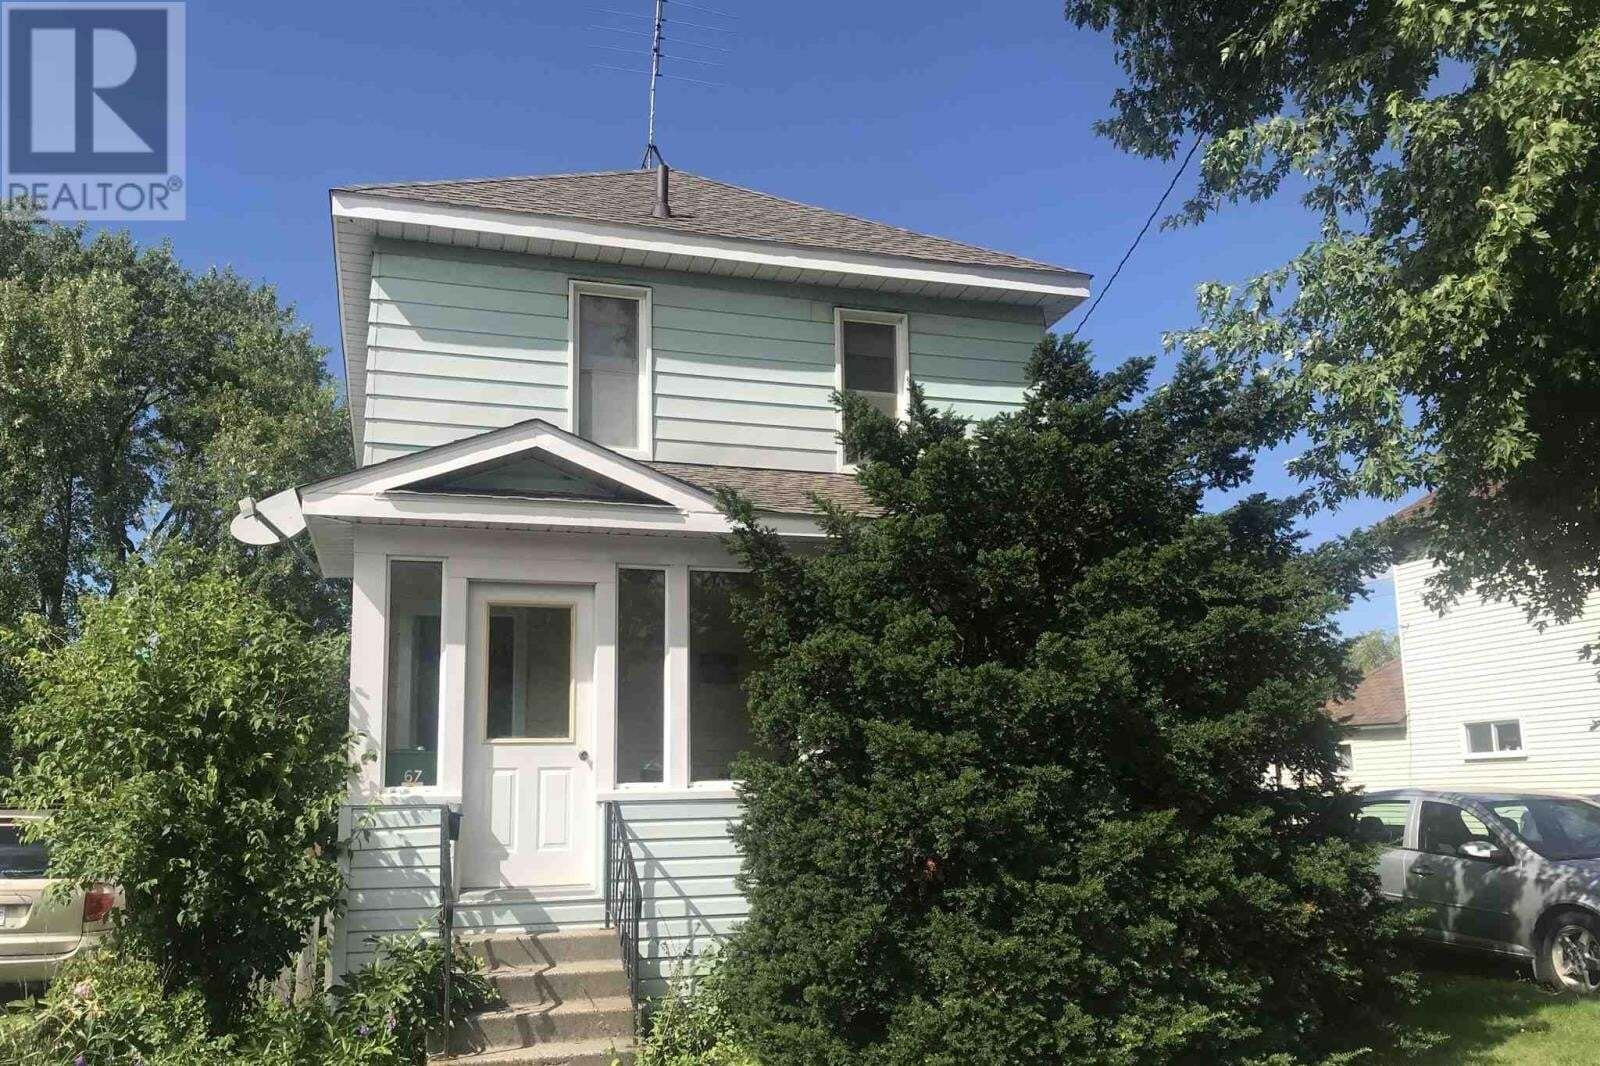 House for sale at 67 St. George's Ave E Sault Ste. Marie Ontario - MLS: SM129322